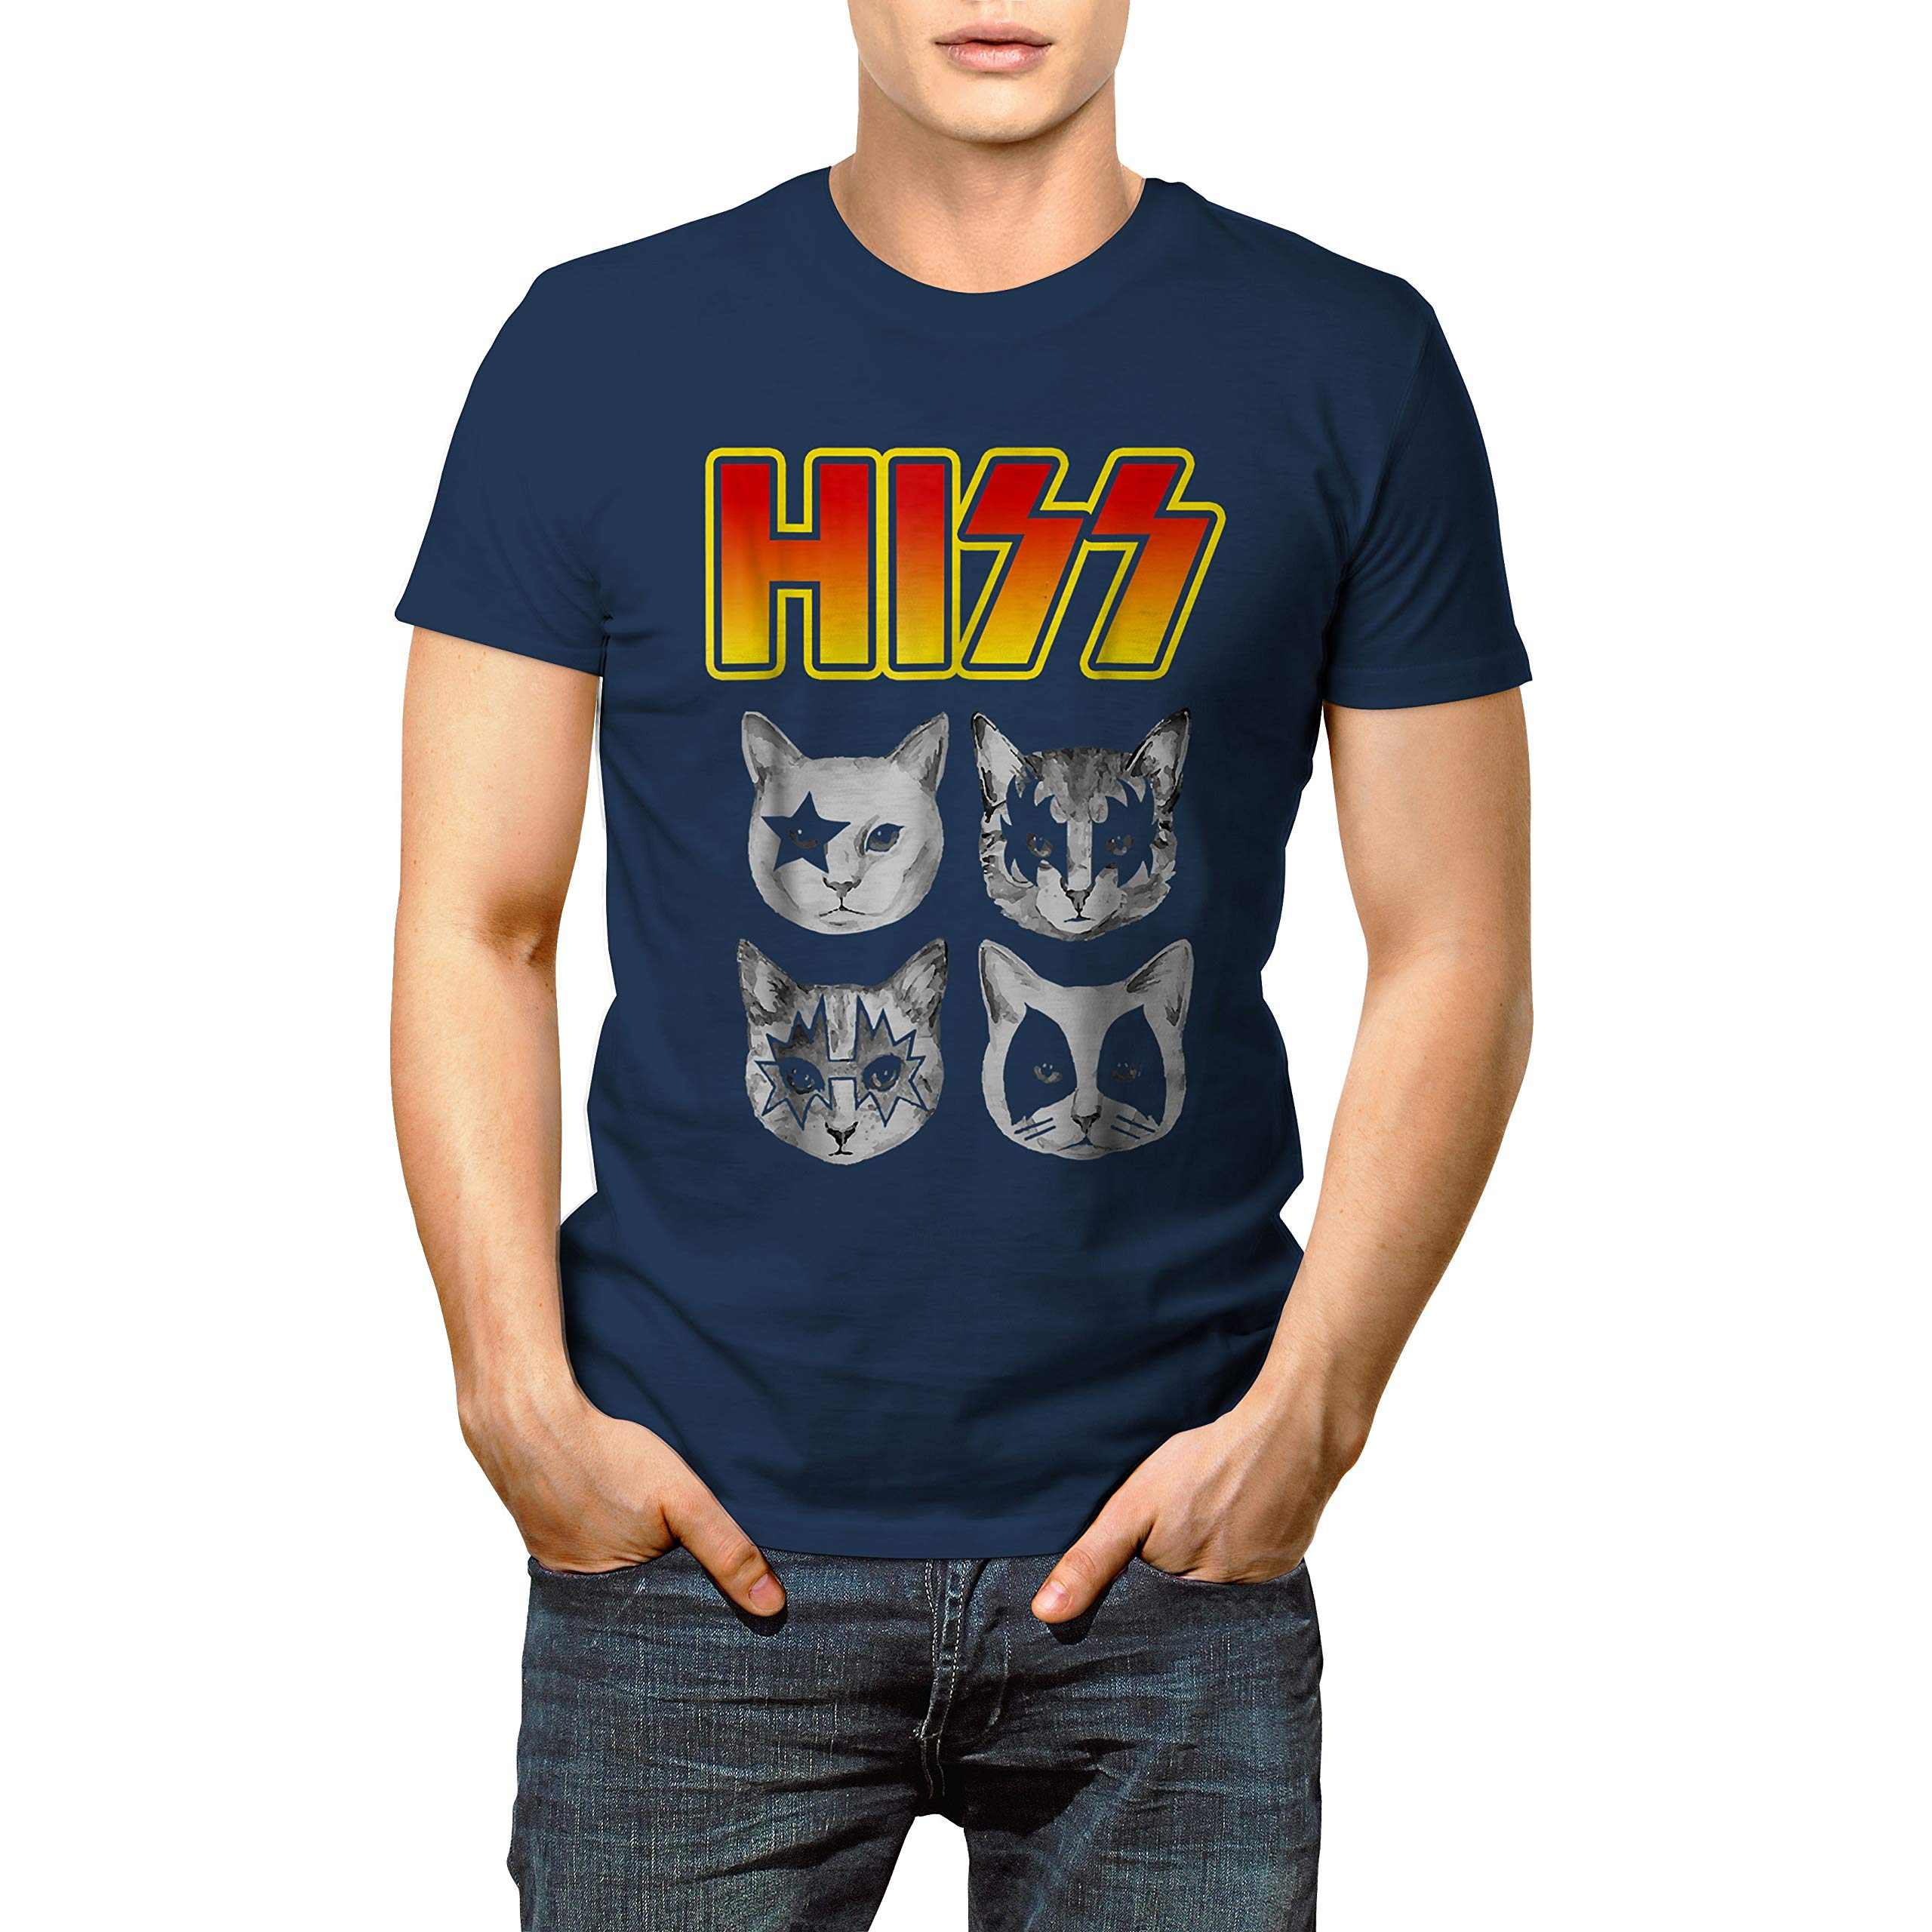 Hiss Funny Cats Kittens Rock Rockin T Shirt Gift Christmas Xmas New Year For Cat Lover